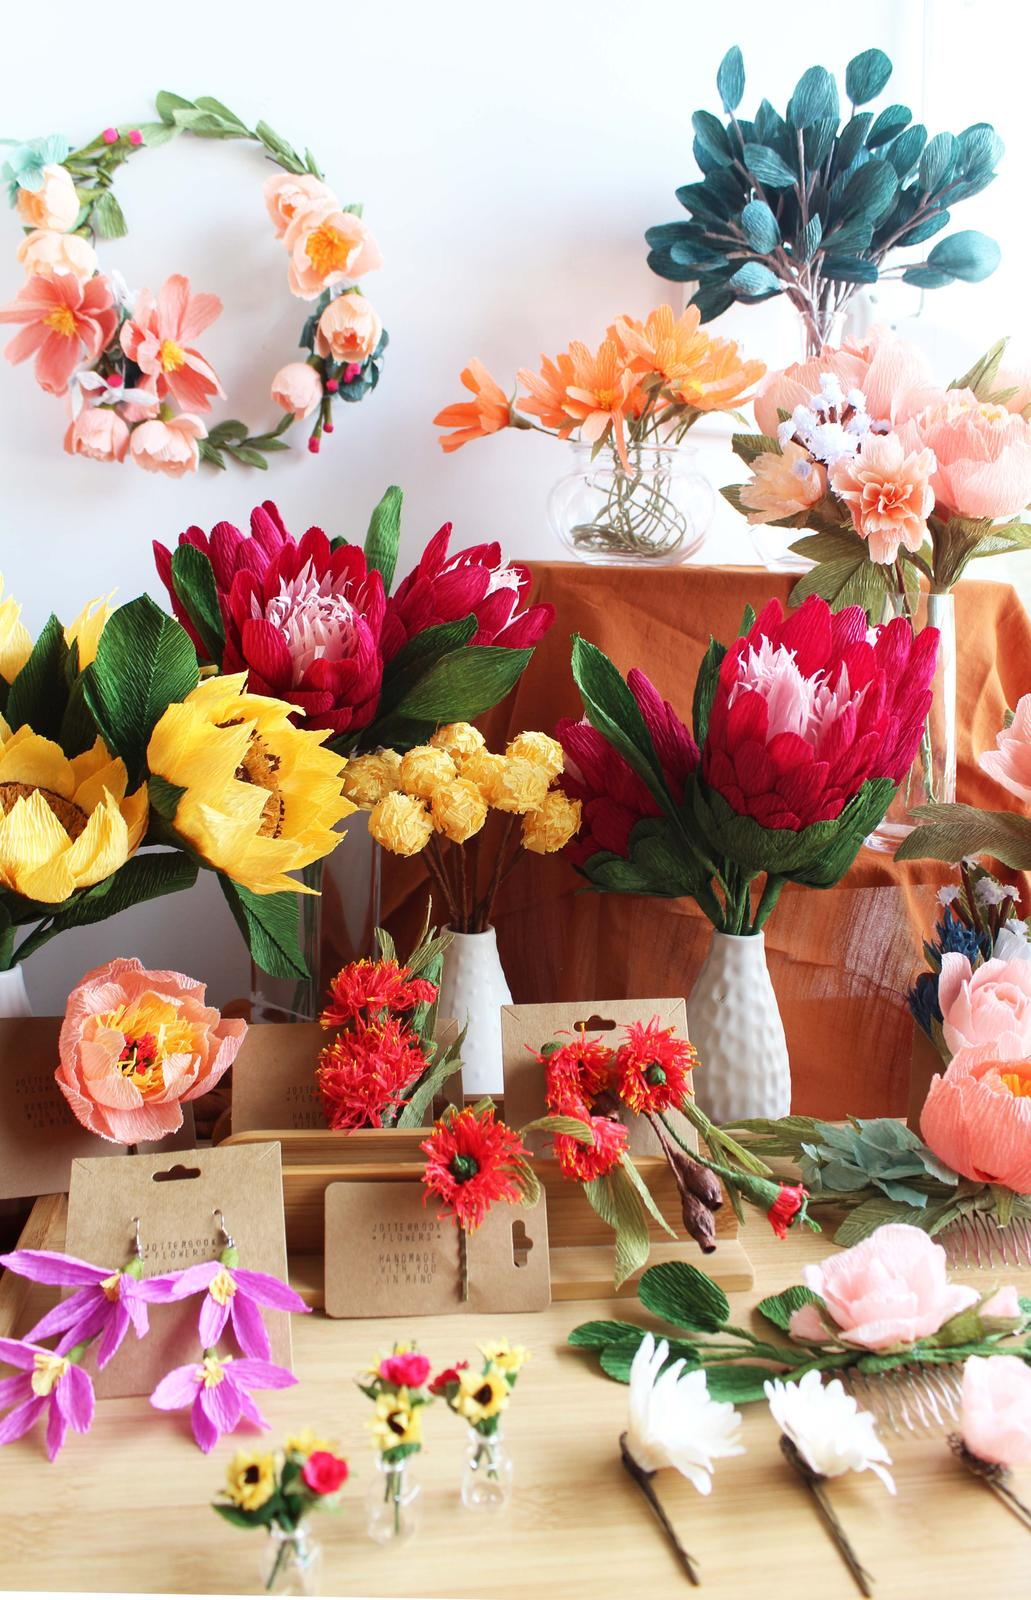 Jotterbook Flowers Stall Display, photographed by Carrissa Wu